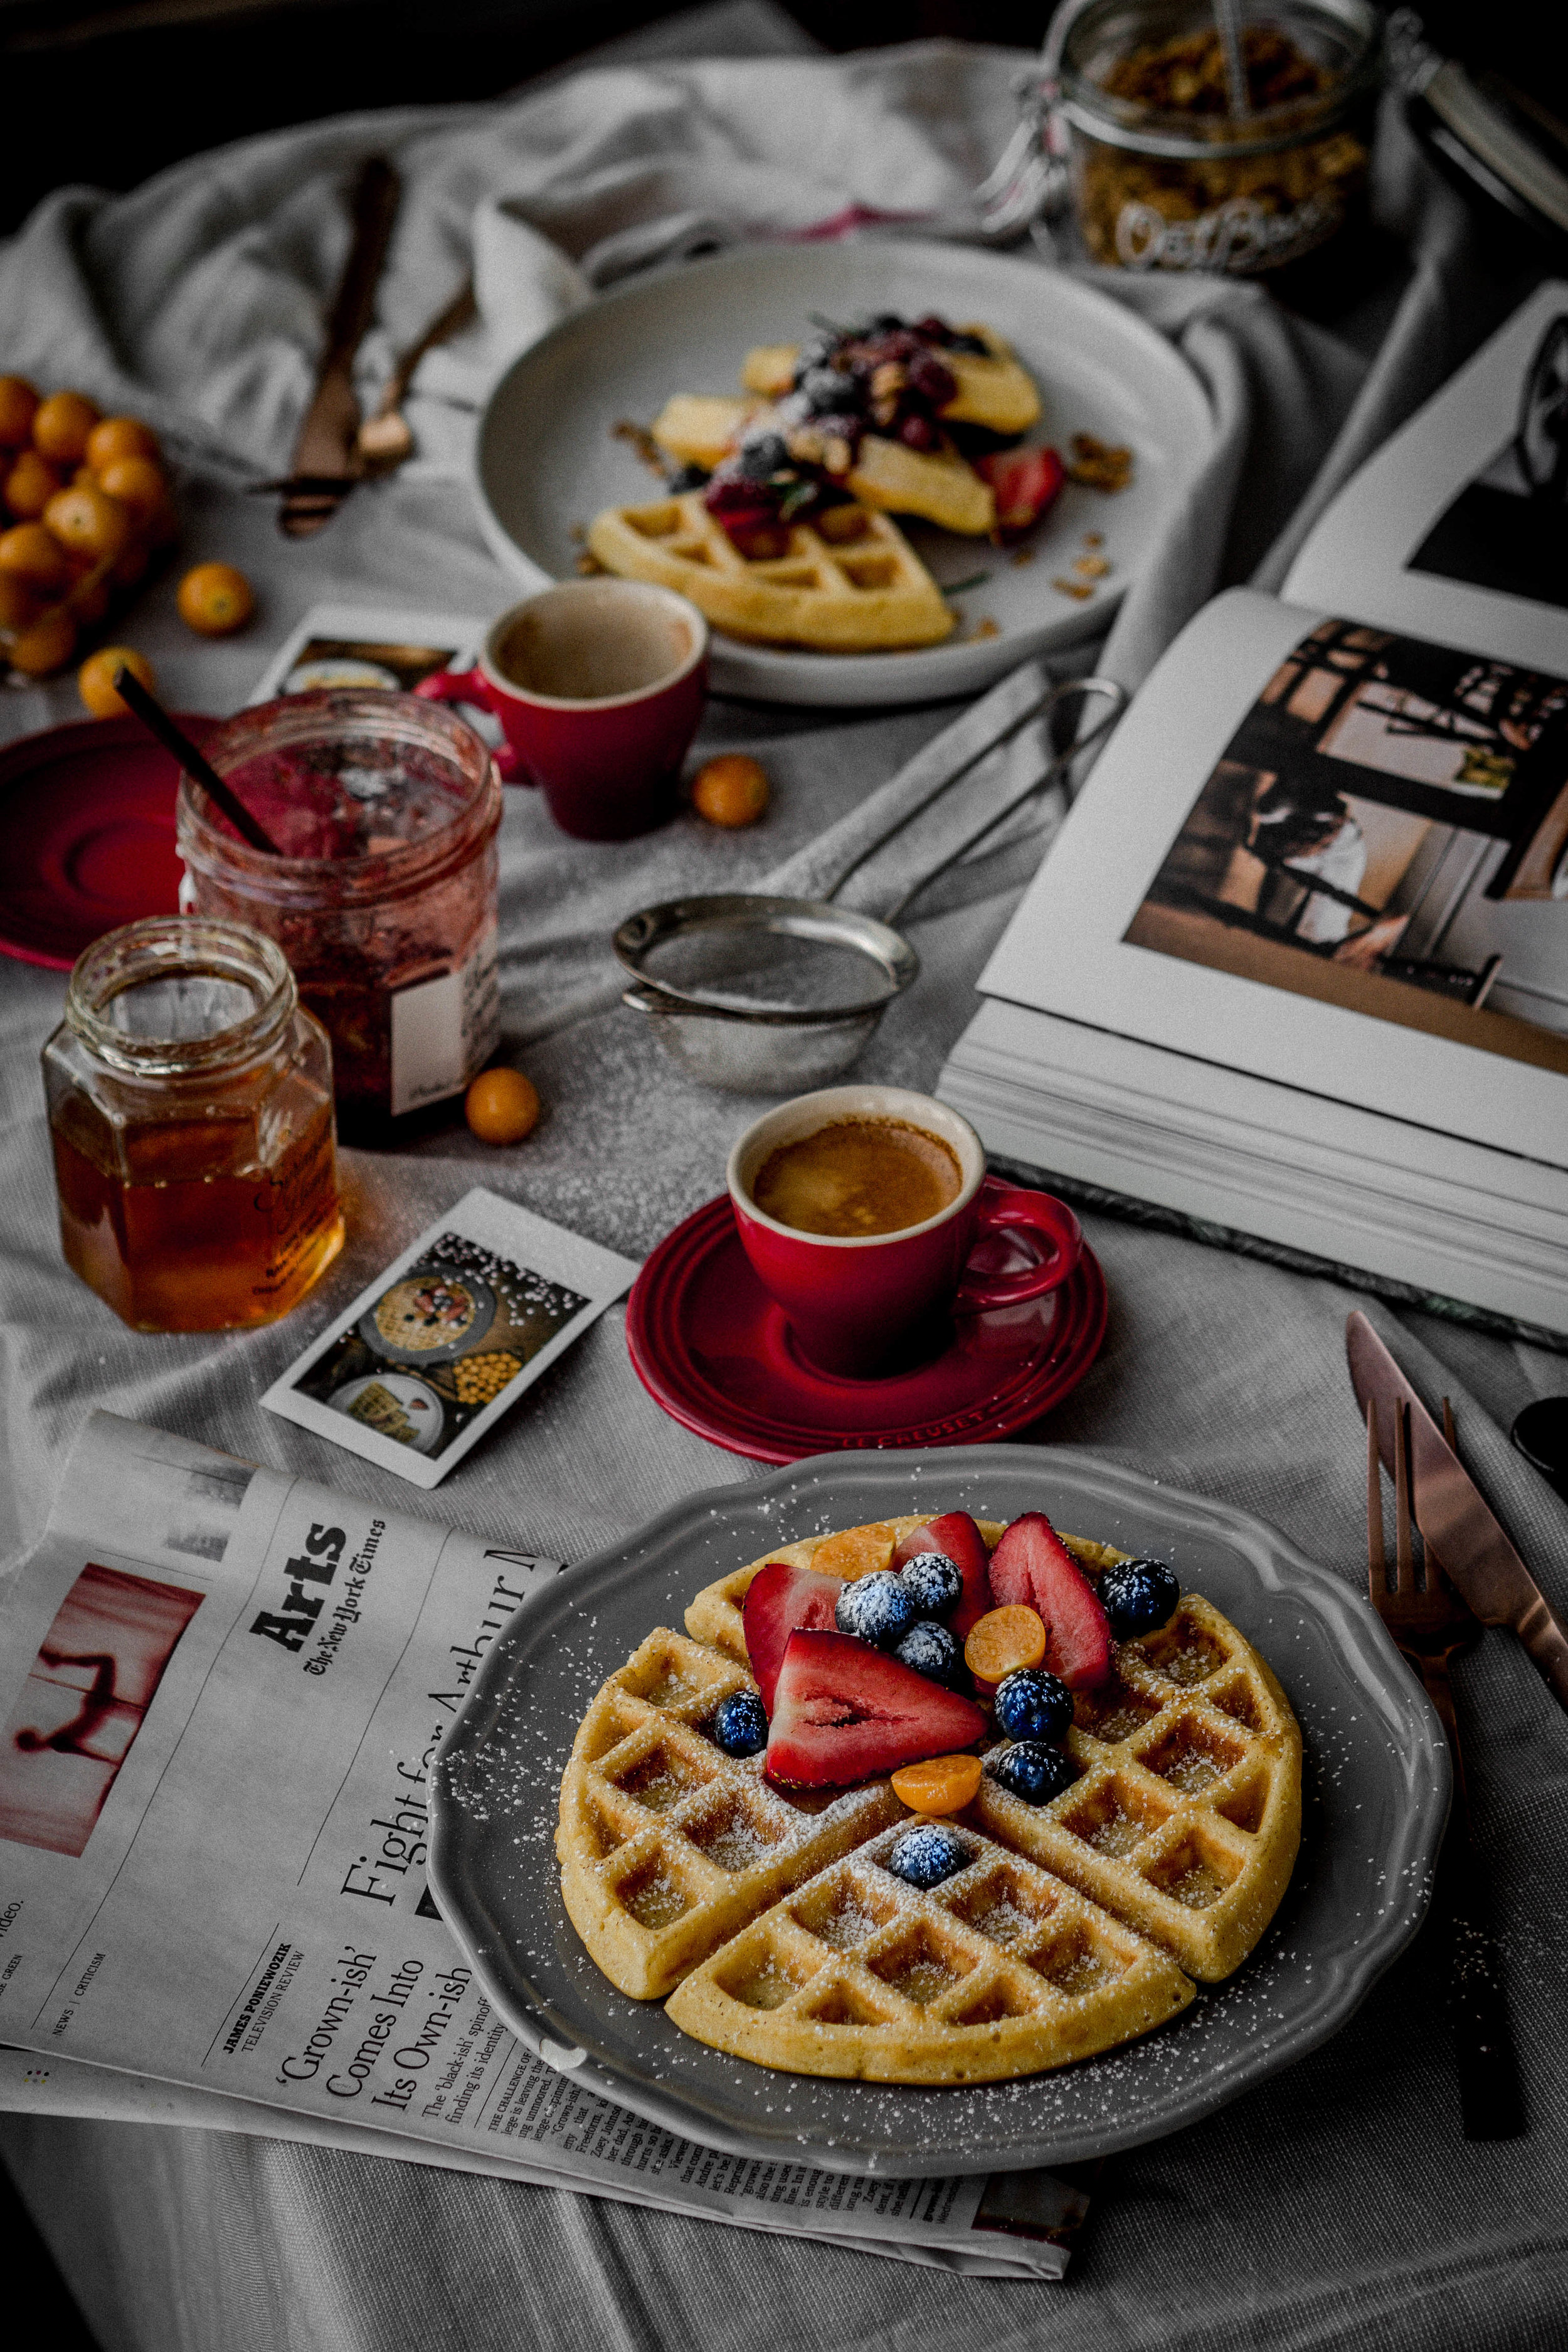 waffle #1: topped with mixed berries, powdered sugar and maple syrup. -